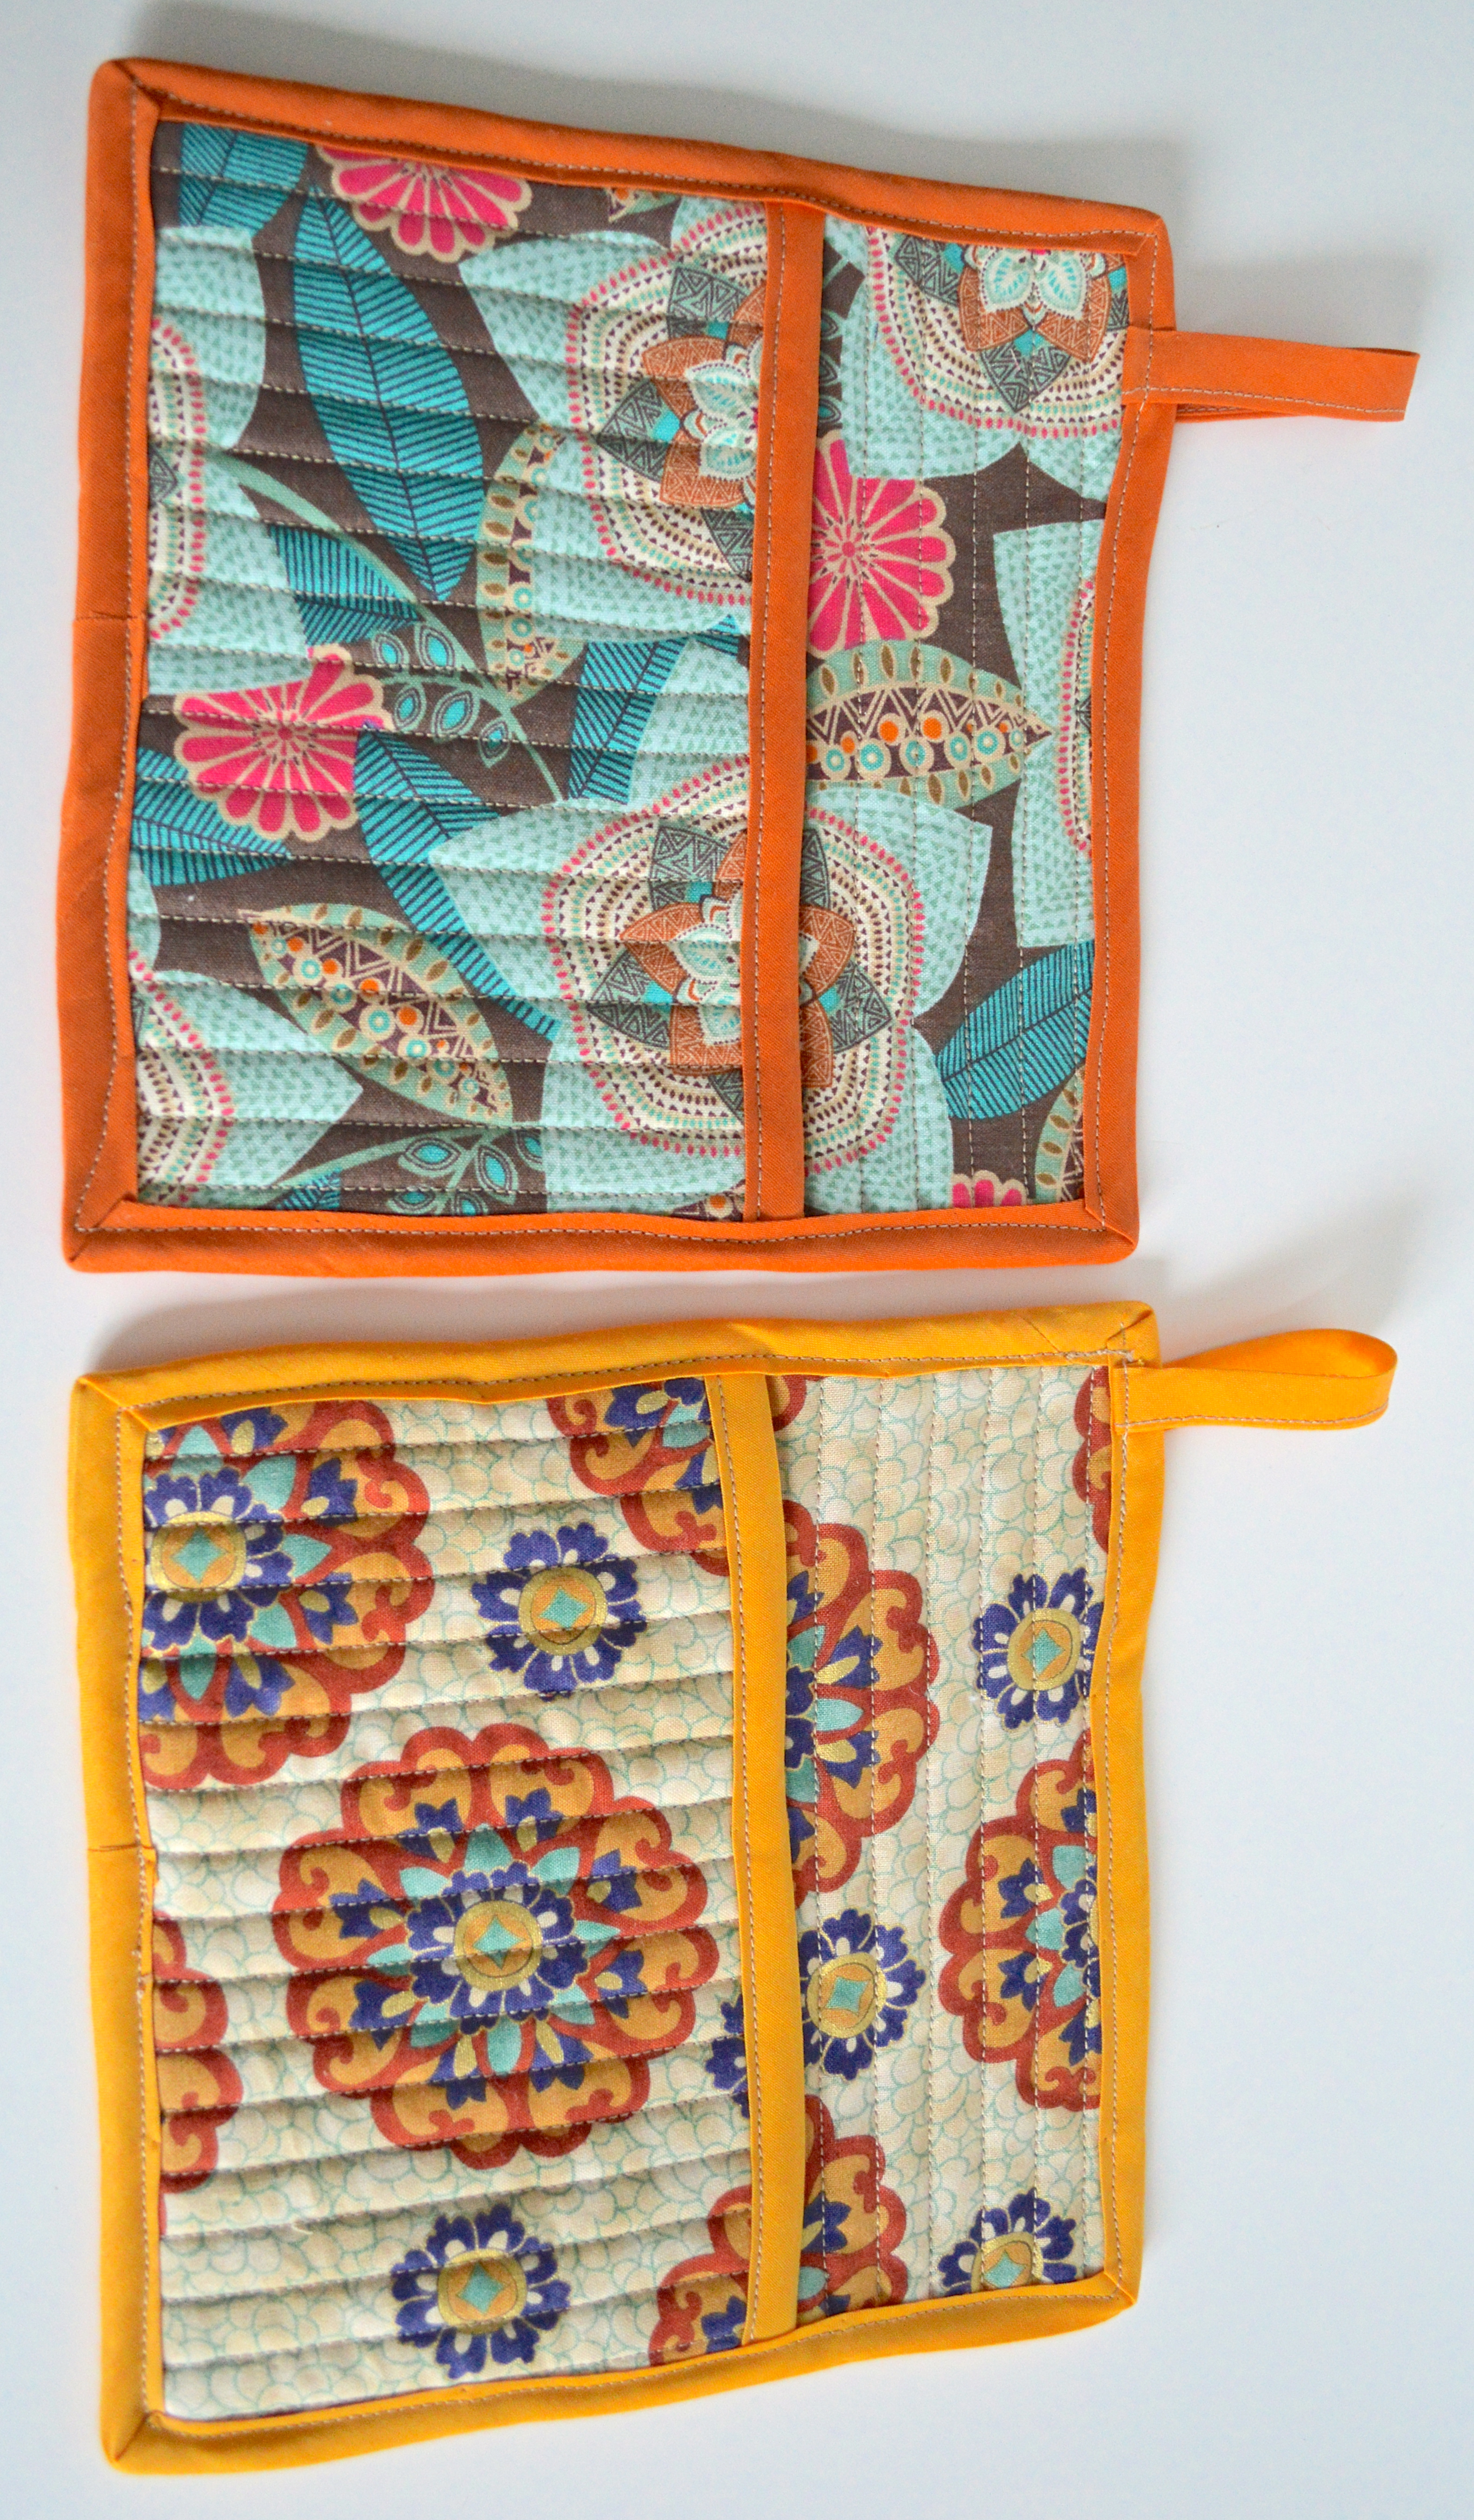 Quilted Pot Holders with Pocket | : quilted pot holders - Adamdwight.com